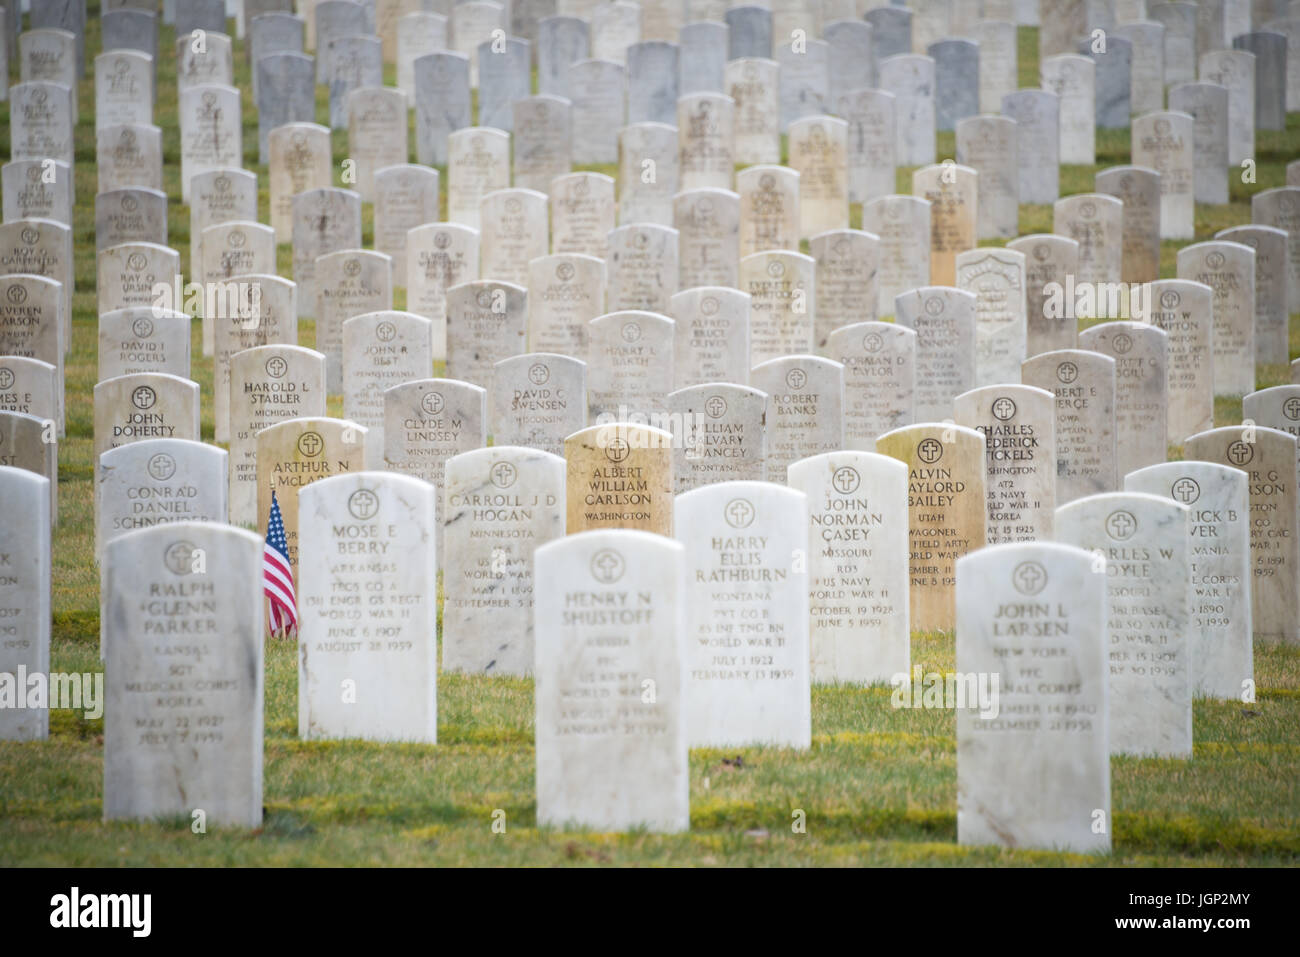 Rows of White Granite Tombstones in Military Cemetery - Stock Image